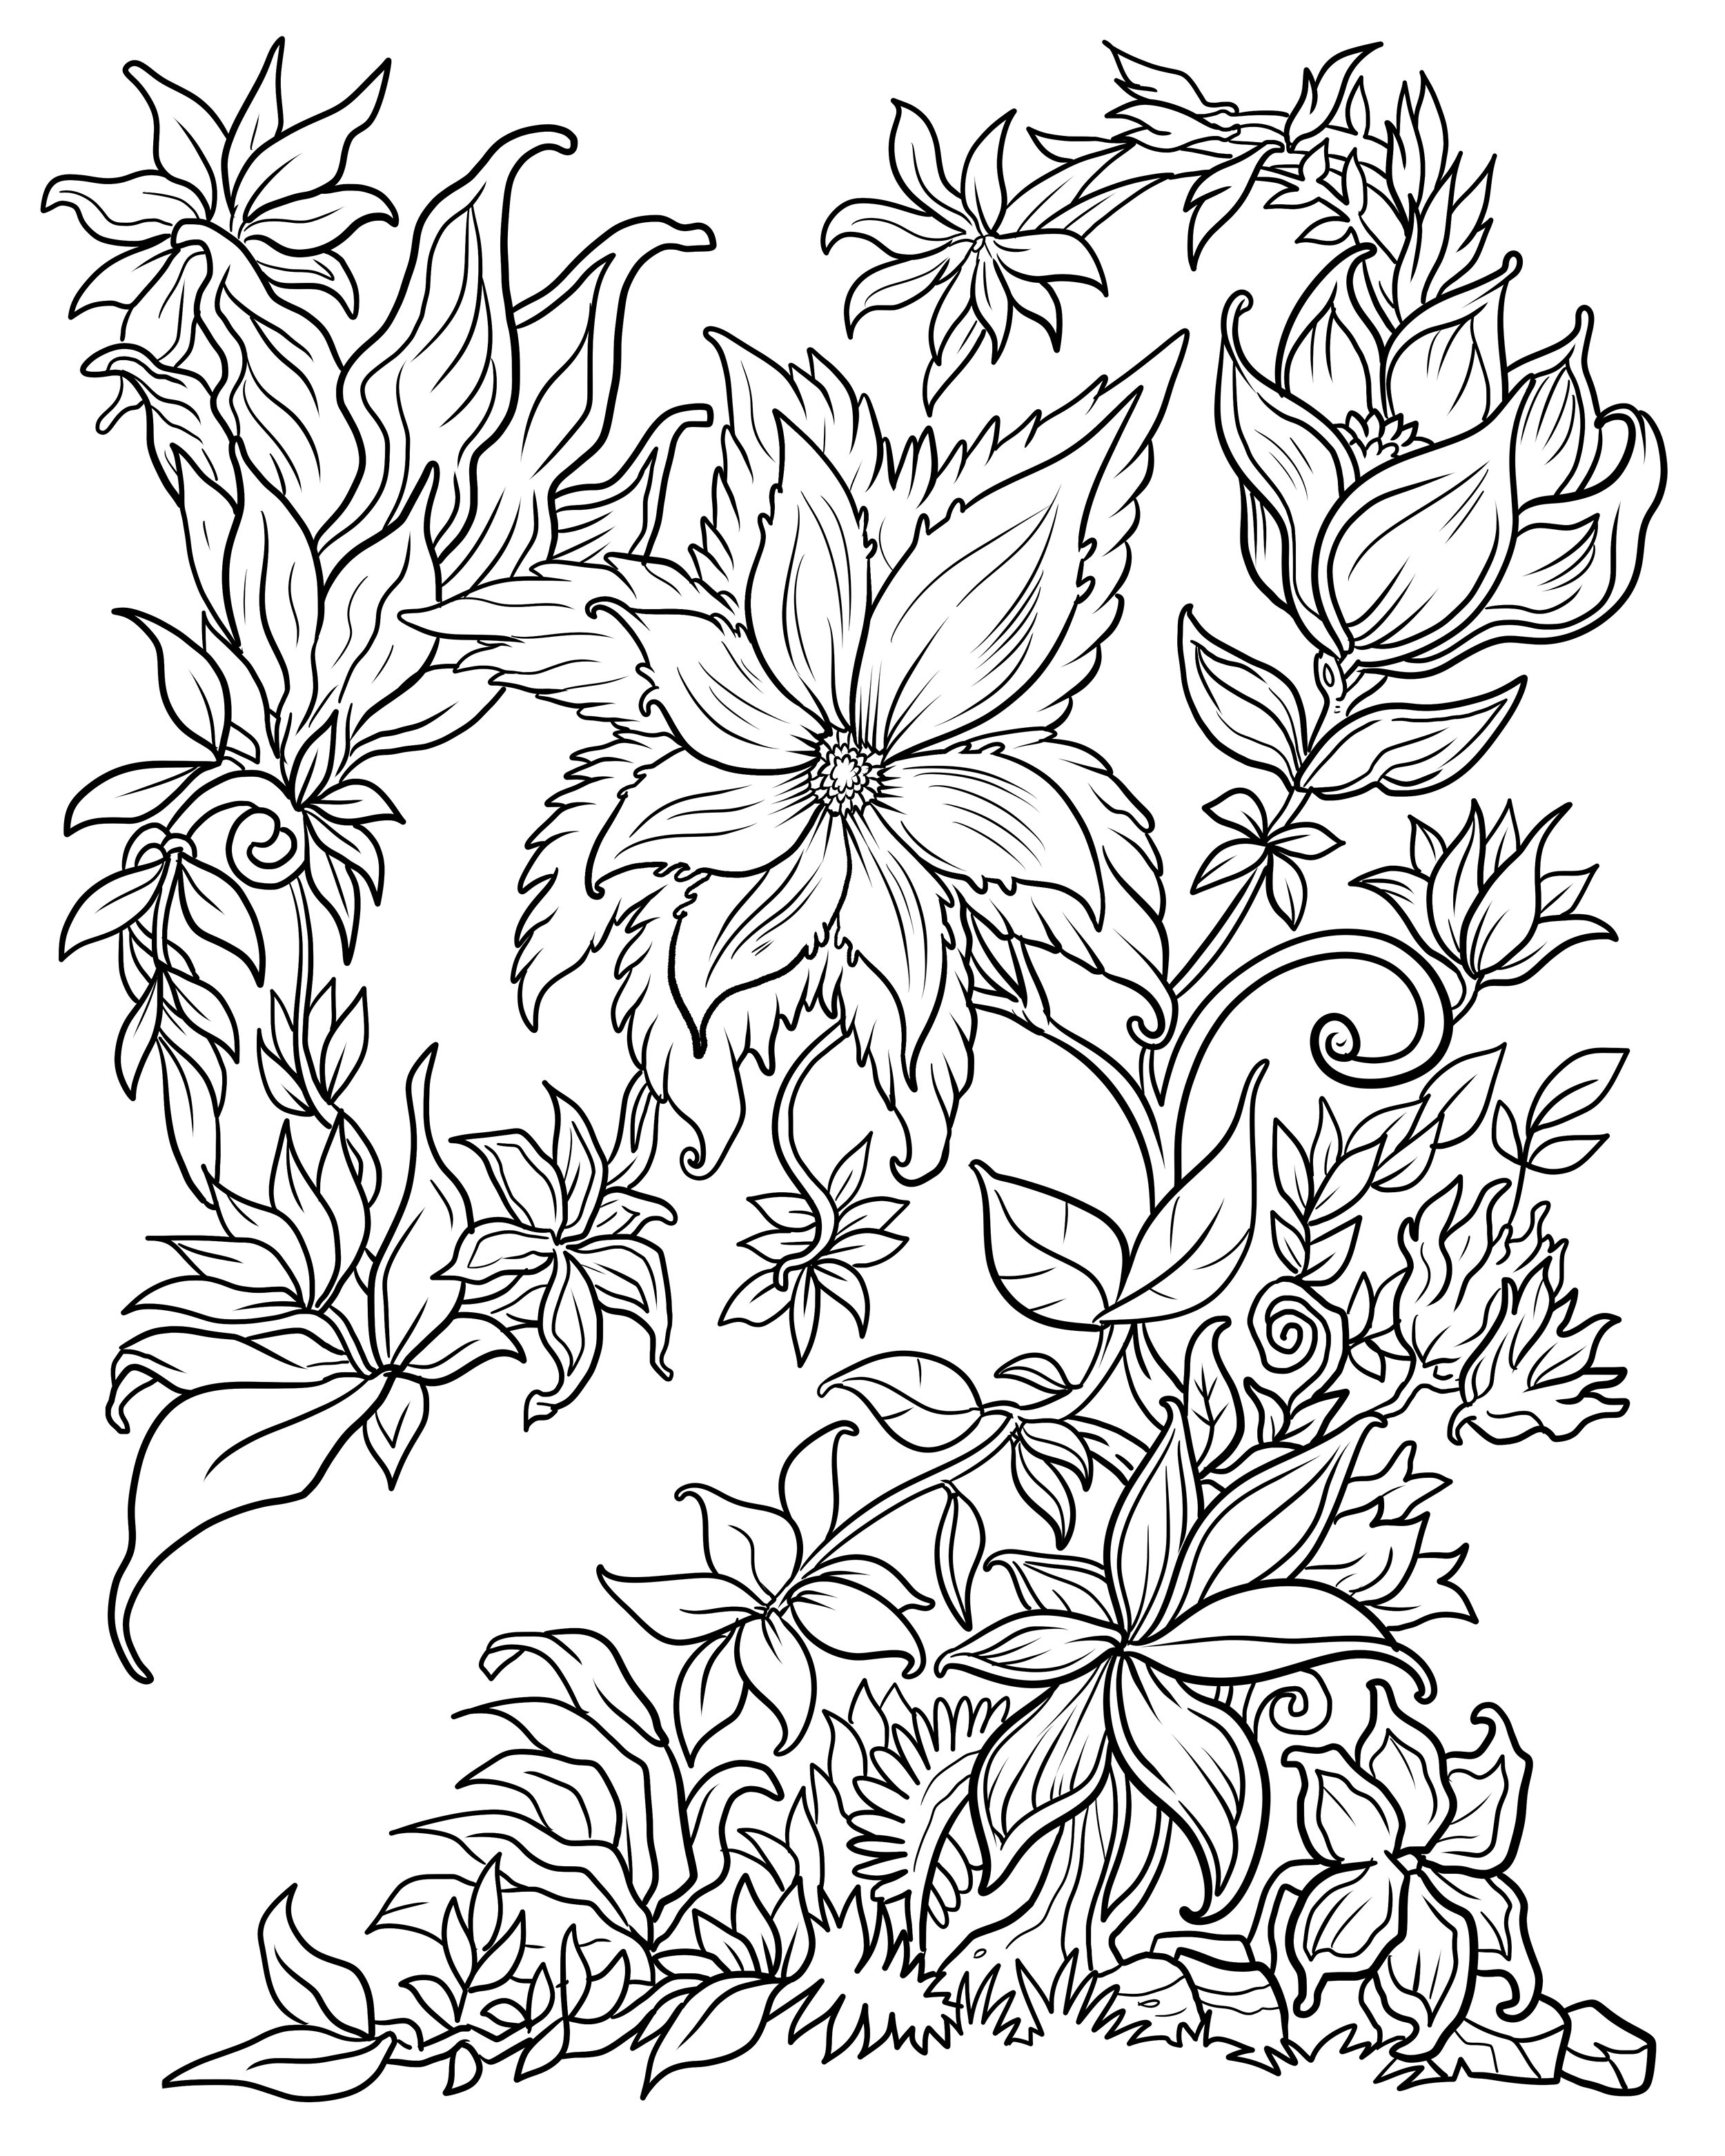 coloring page of flower flower images to print and color coloring page flower of